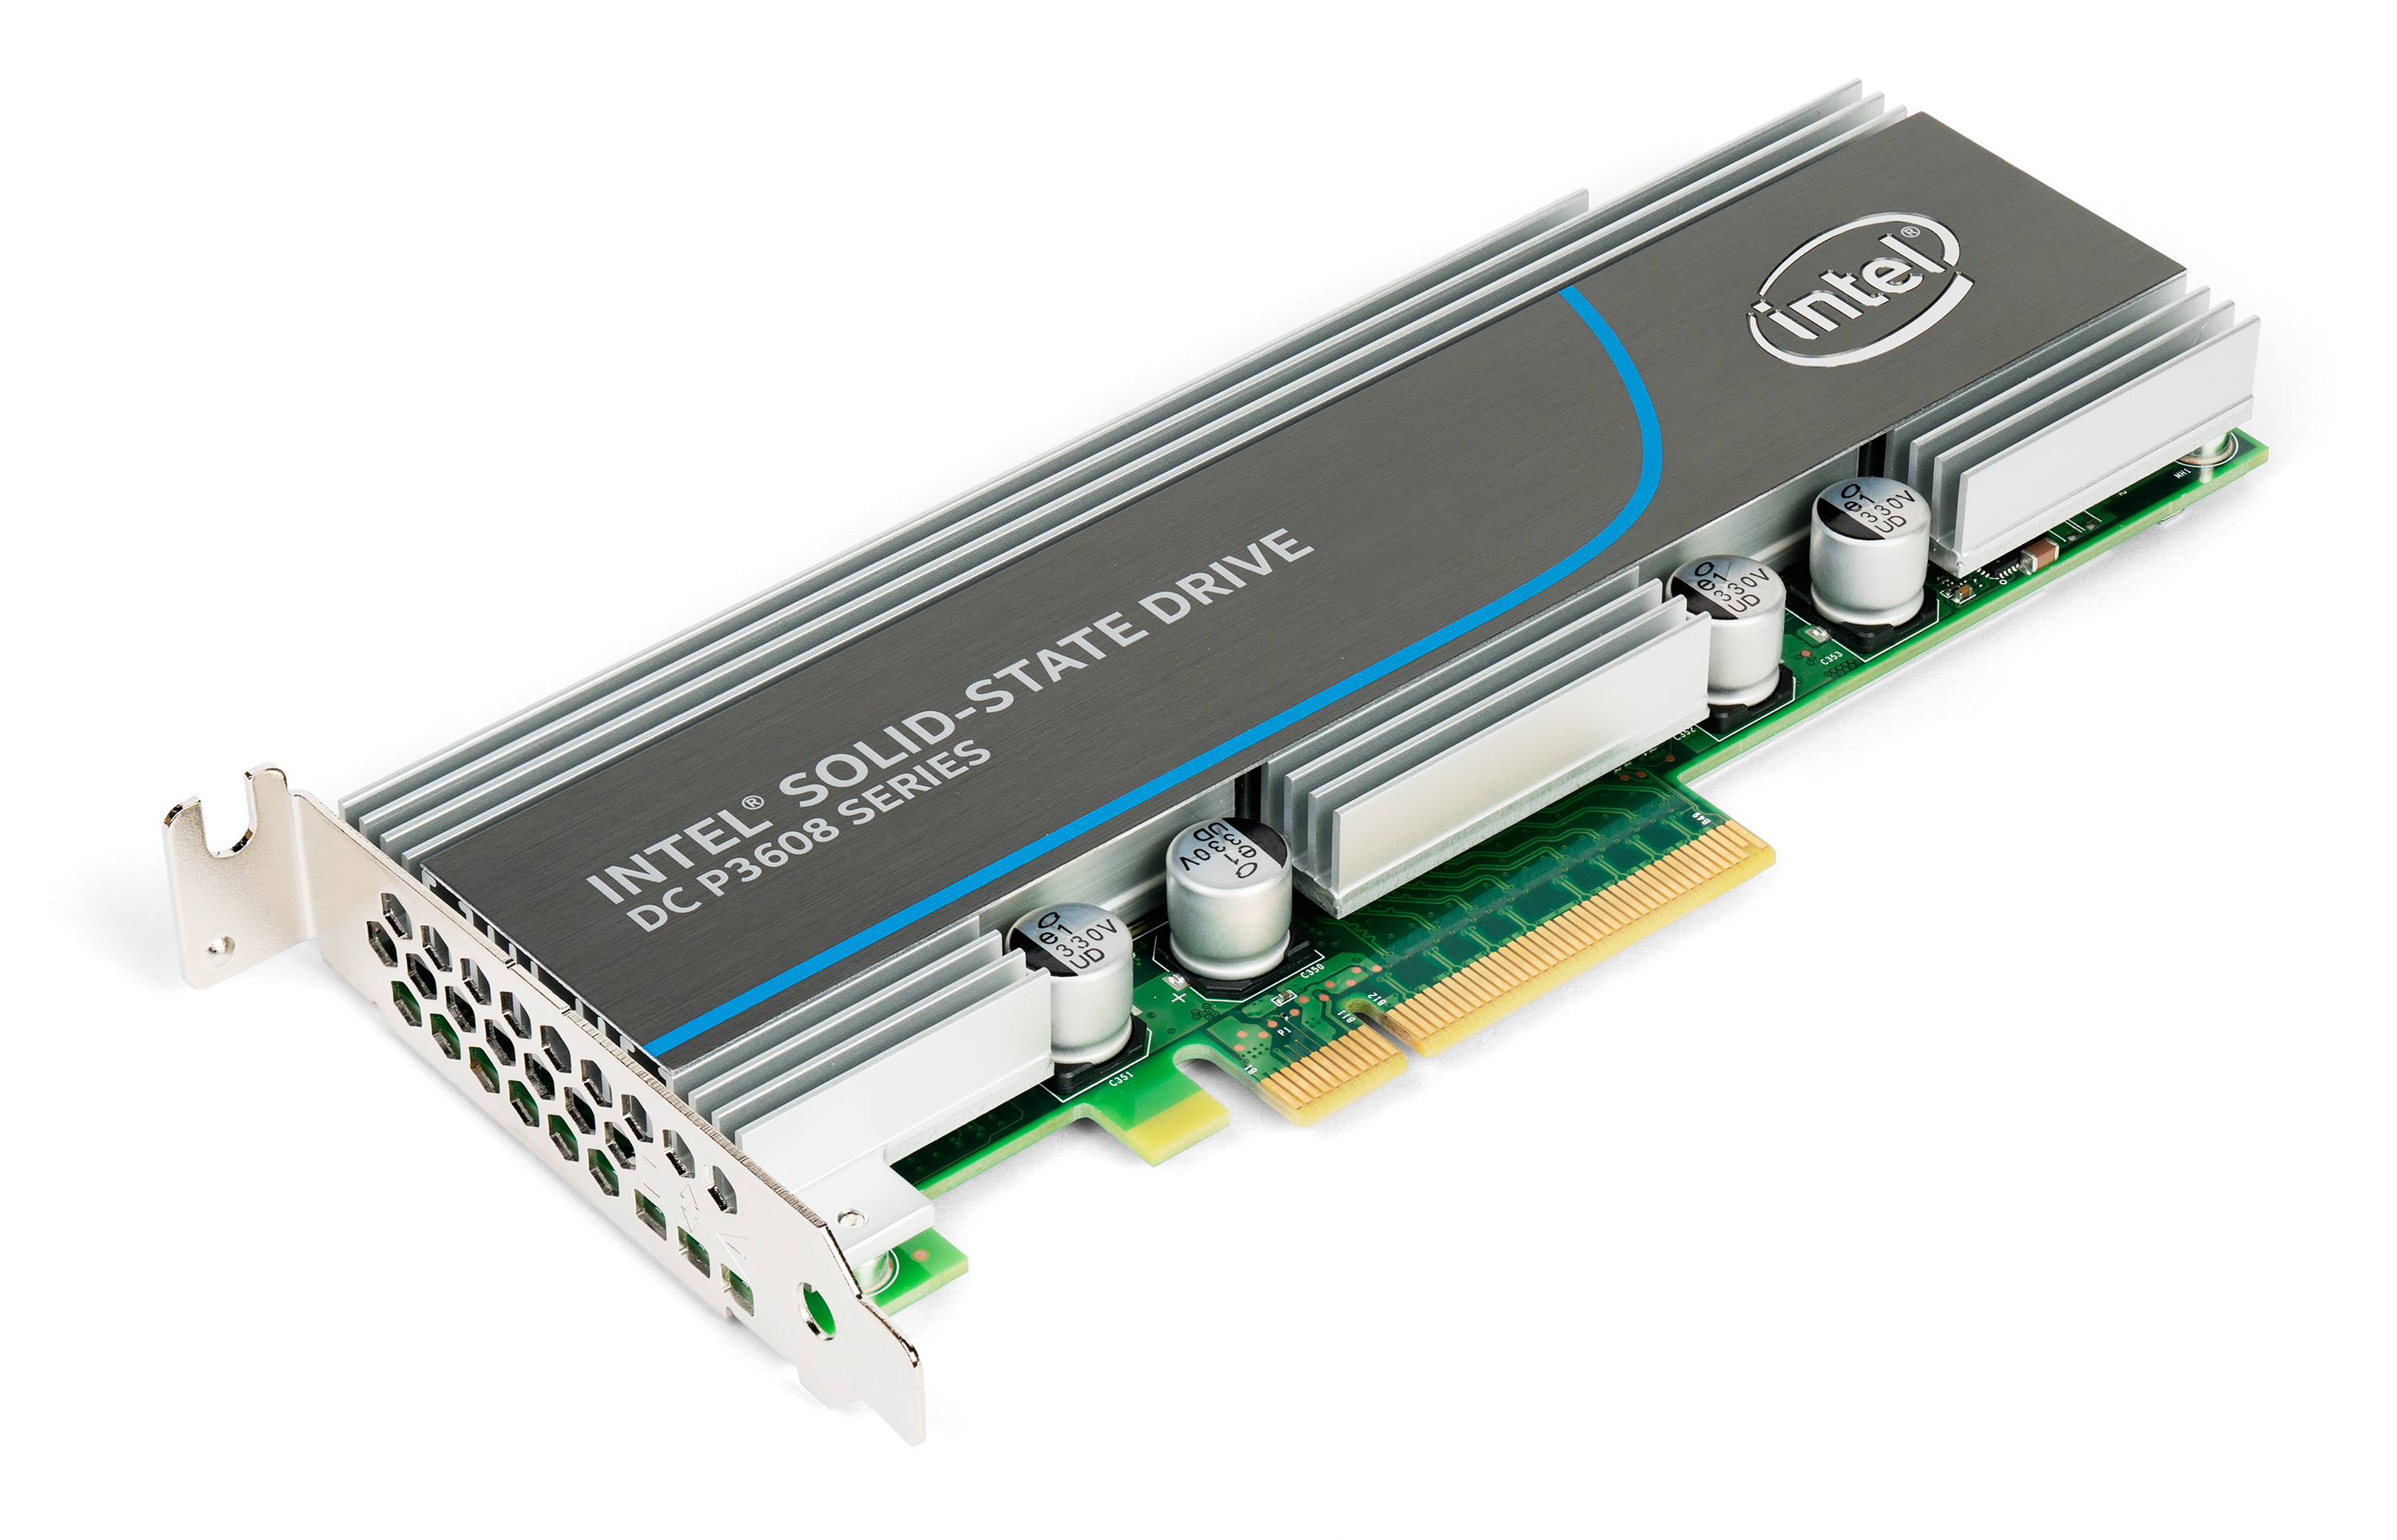 intel_p3608_nvme_flash_ssd_pci-e_add-in_card.jpg